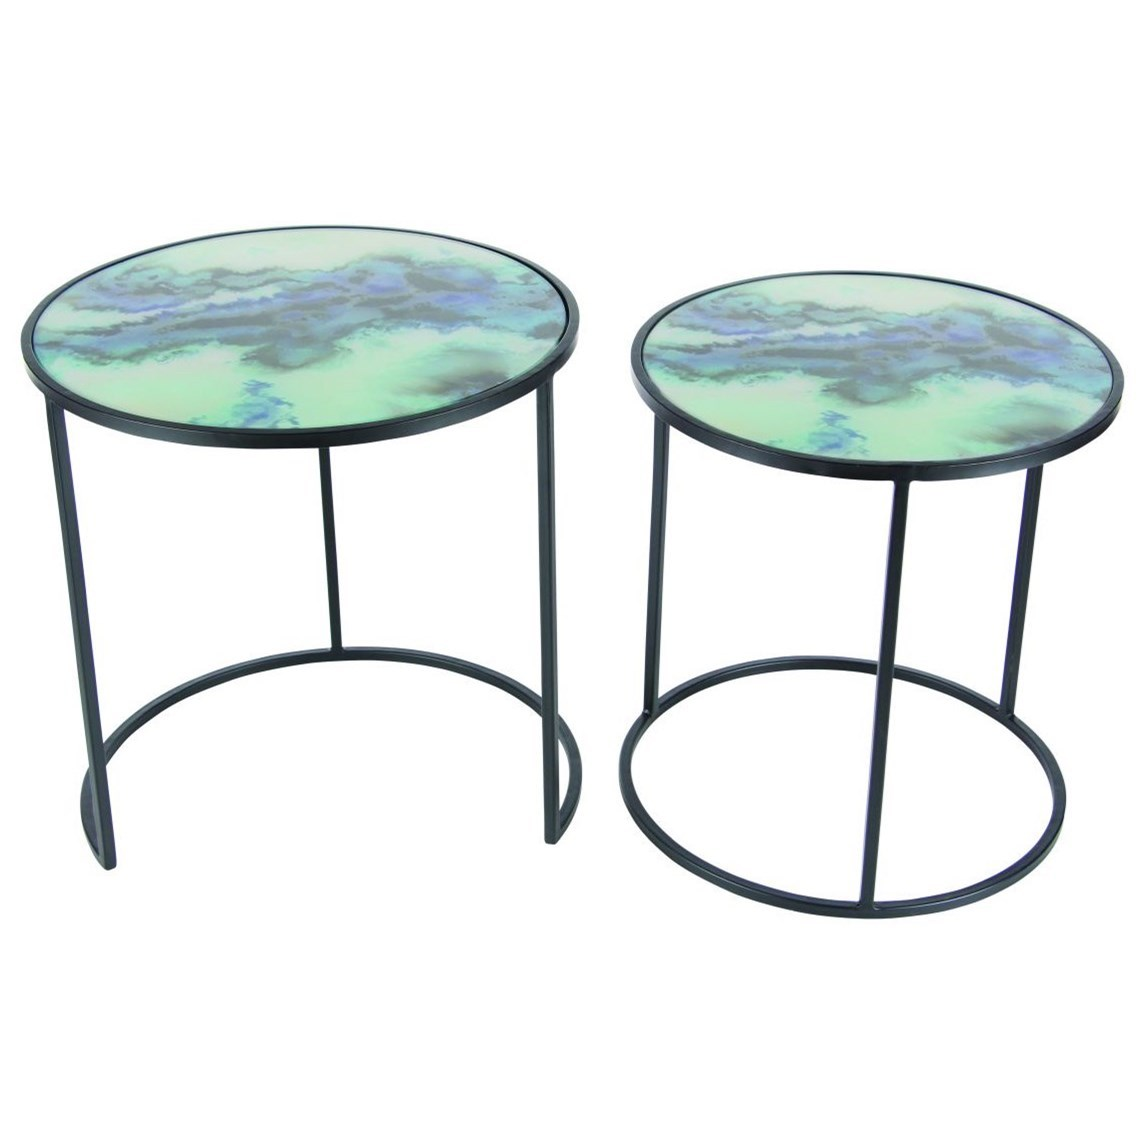 Accent Furniture Metal/Glass Accent Tables, Set of 2 by UMA Enterprises, Inc. at Wilcox Furniture